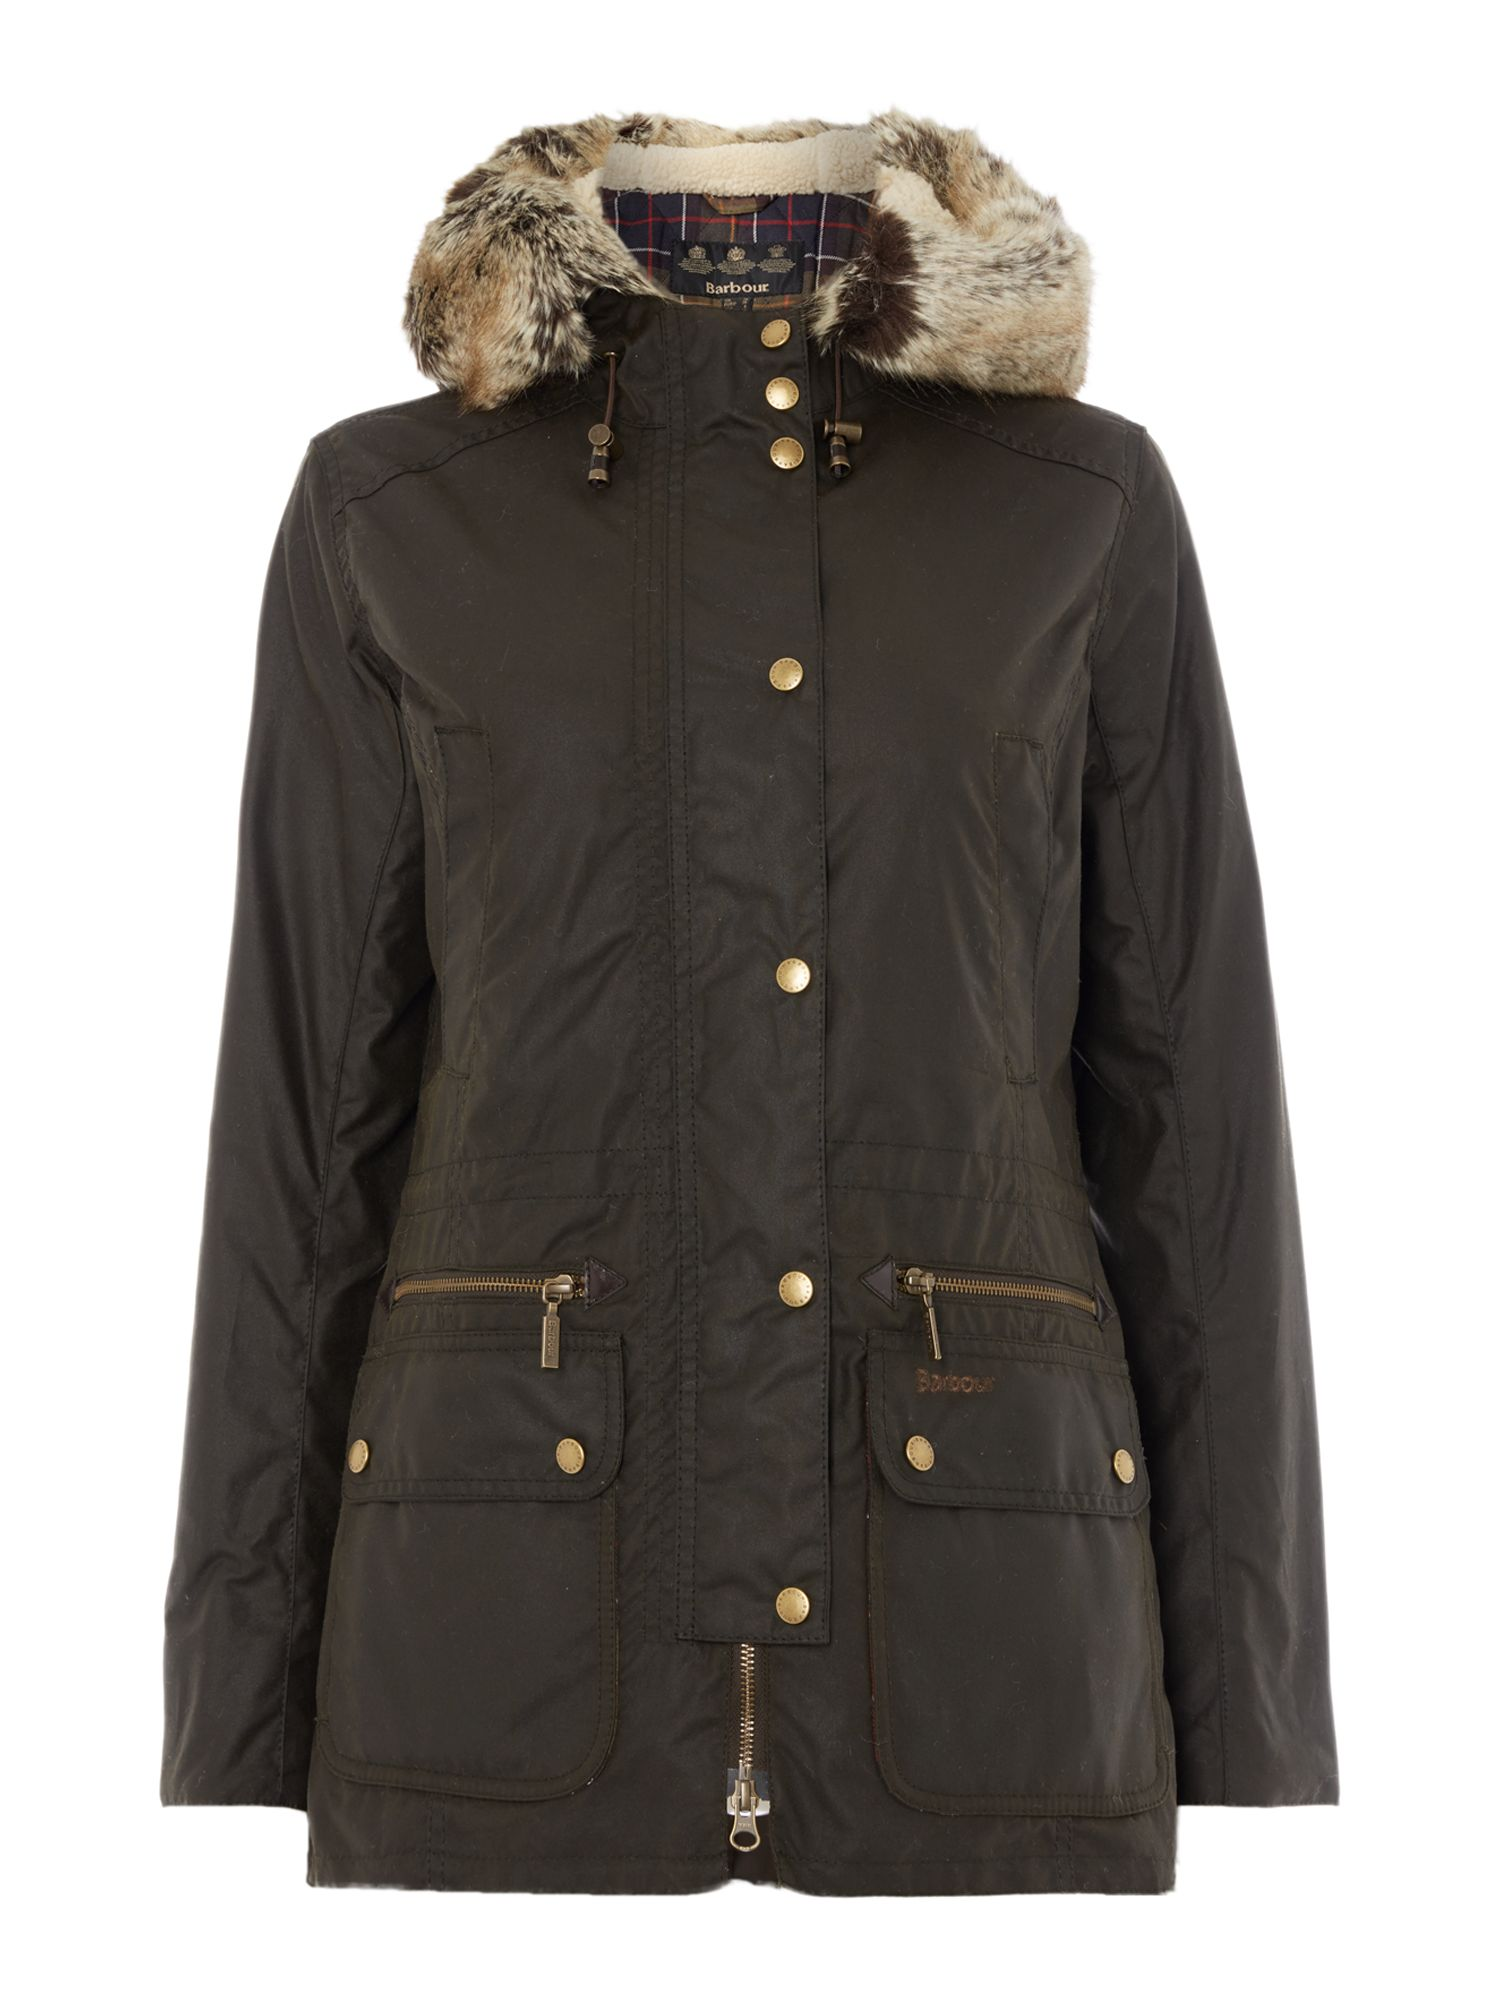 Barbour Kelsall waxed jacket, Olive